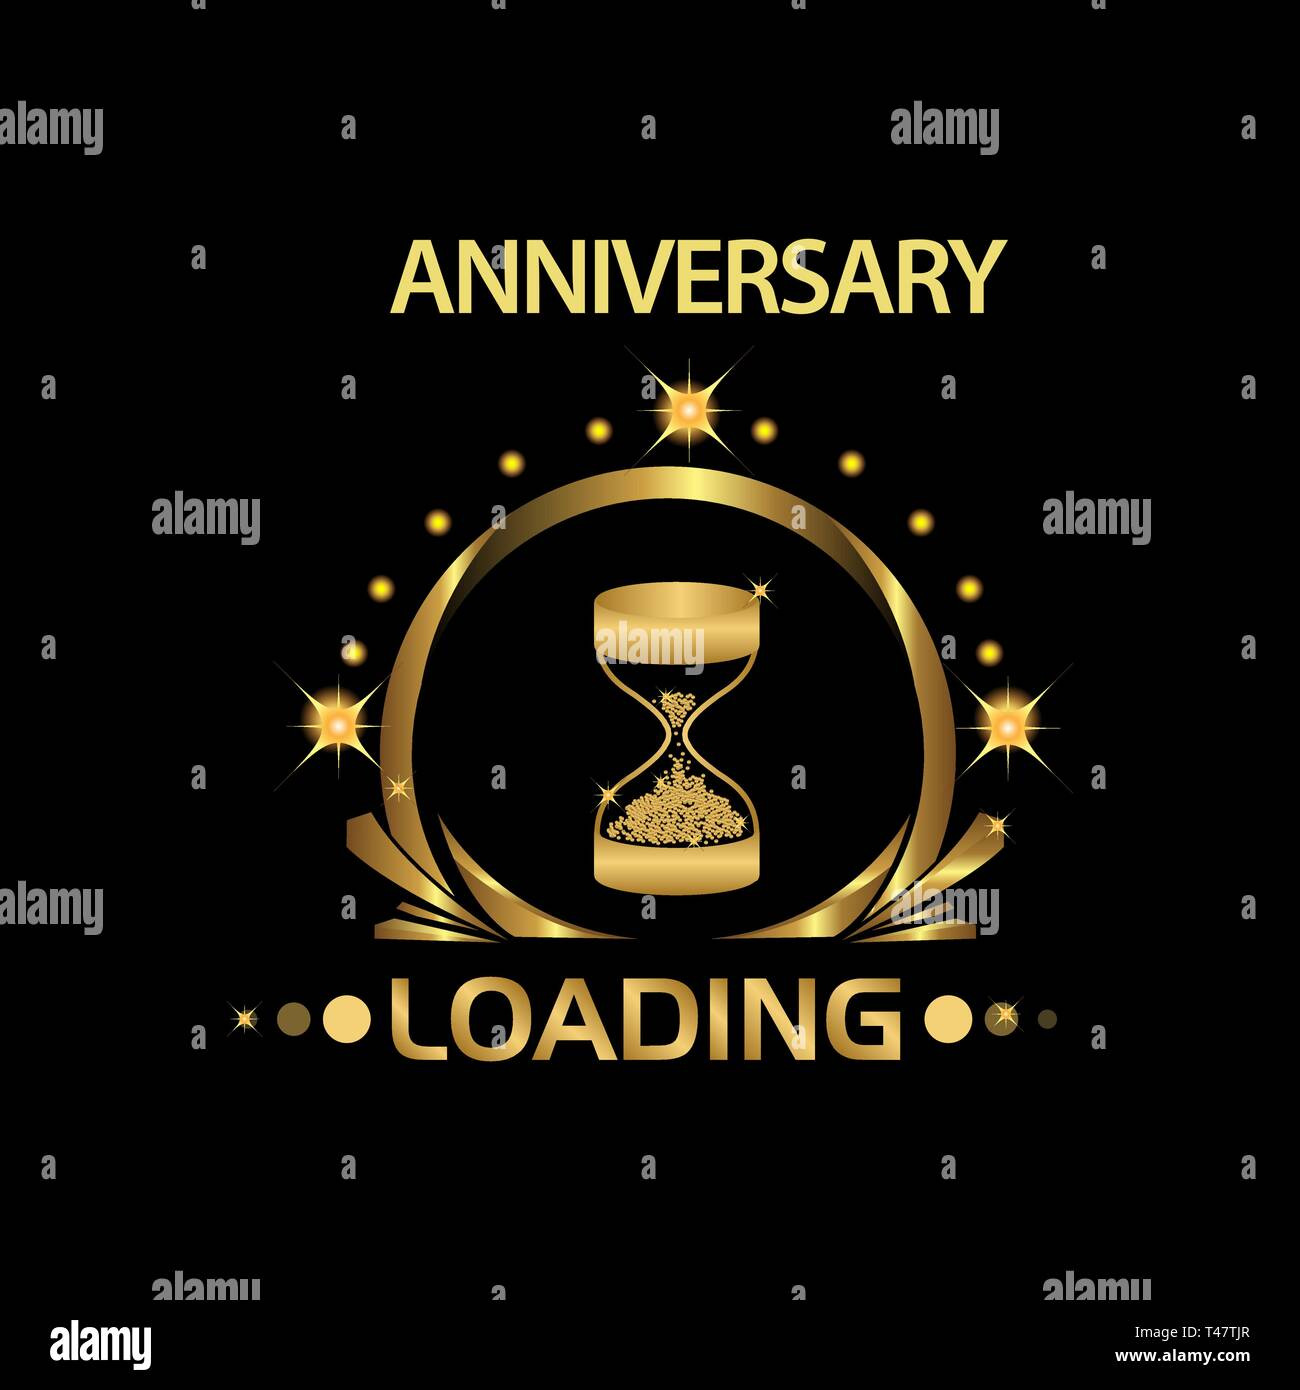 Anniversary Is Loading Anniversary Template Design For Web